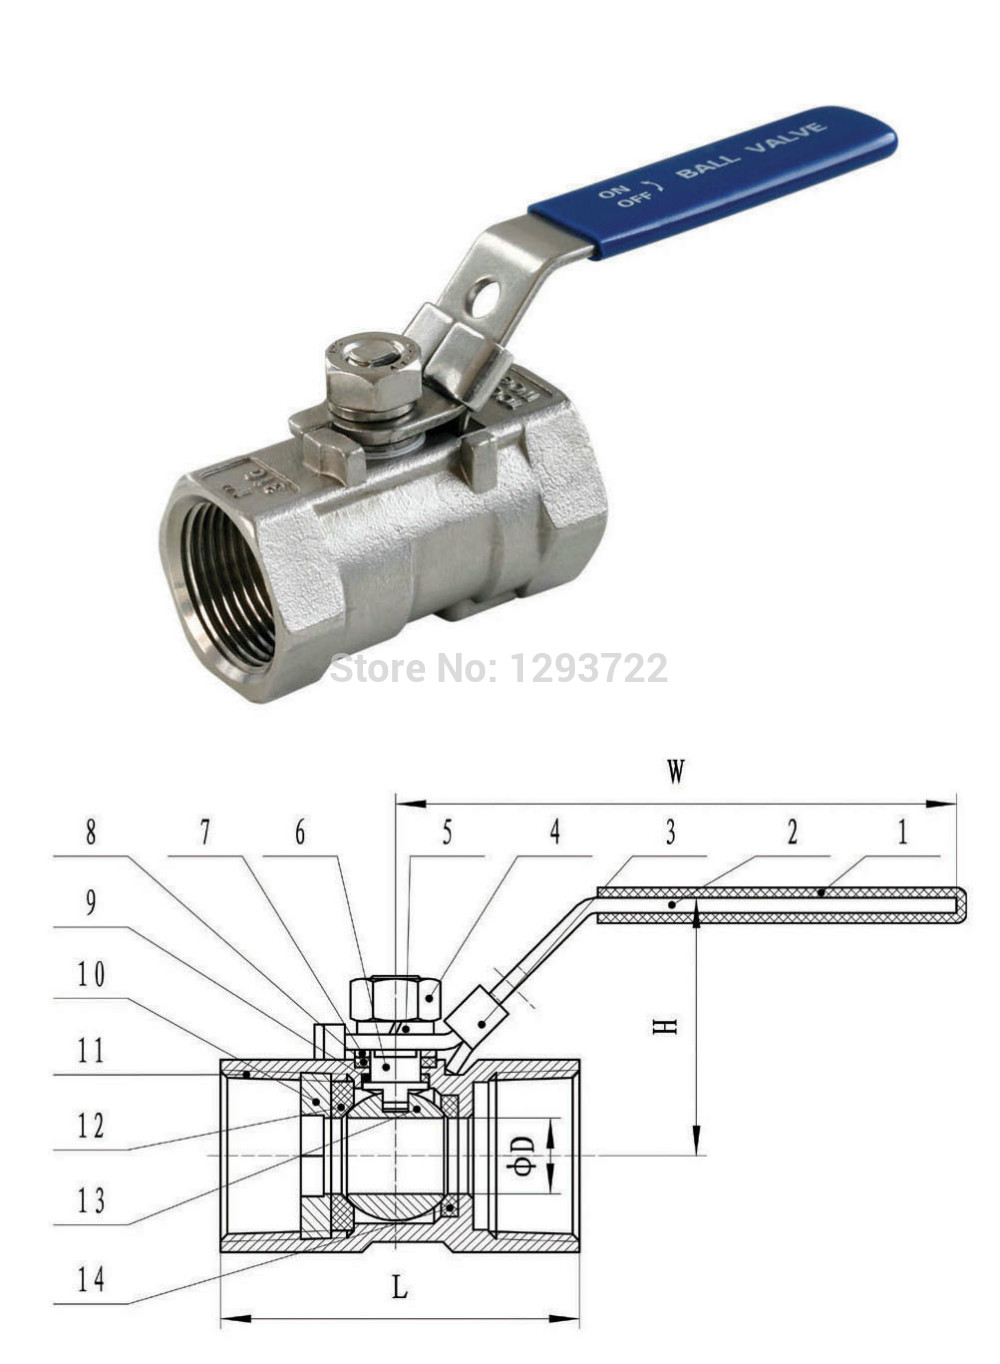 small resolution of 1 1 4 dn32 stainless steel 1 piece ball valve ss304 economical water valve stainless steel ball valve ball valve dn20 in valve from home improvement on